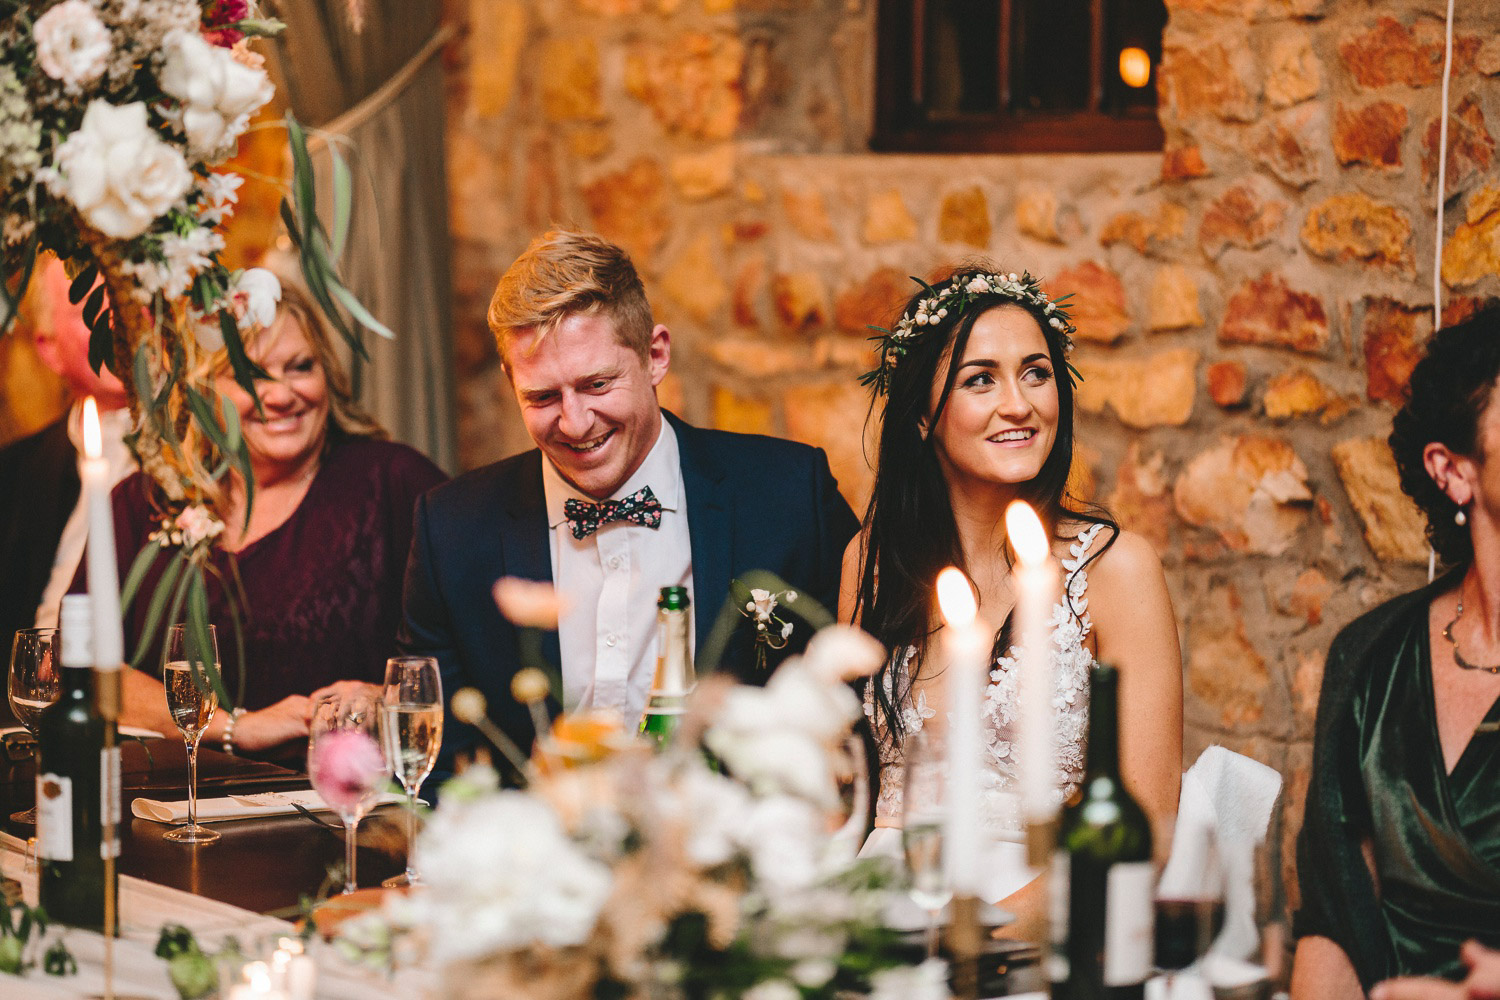 western-cape-photoghers-gen-scott-greyton-wedding-photography-charlie-ray128.jpg